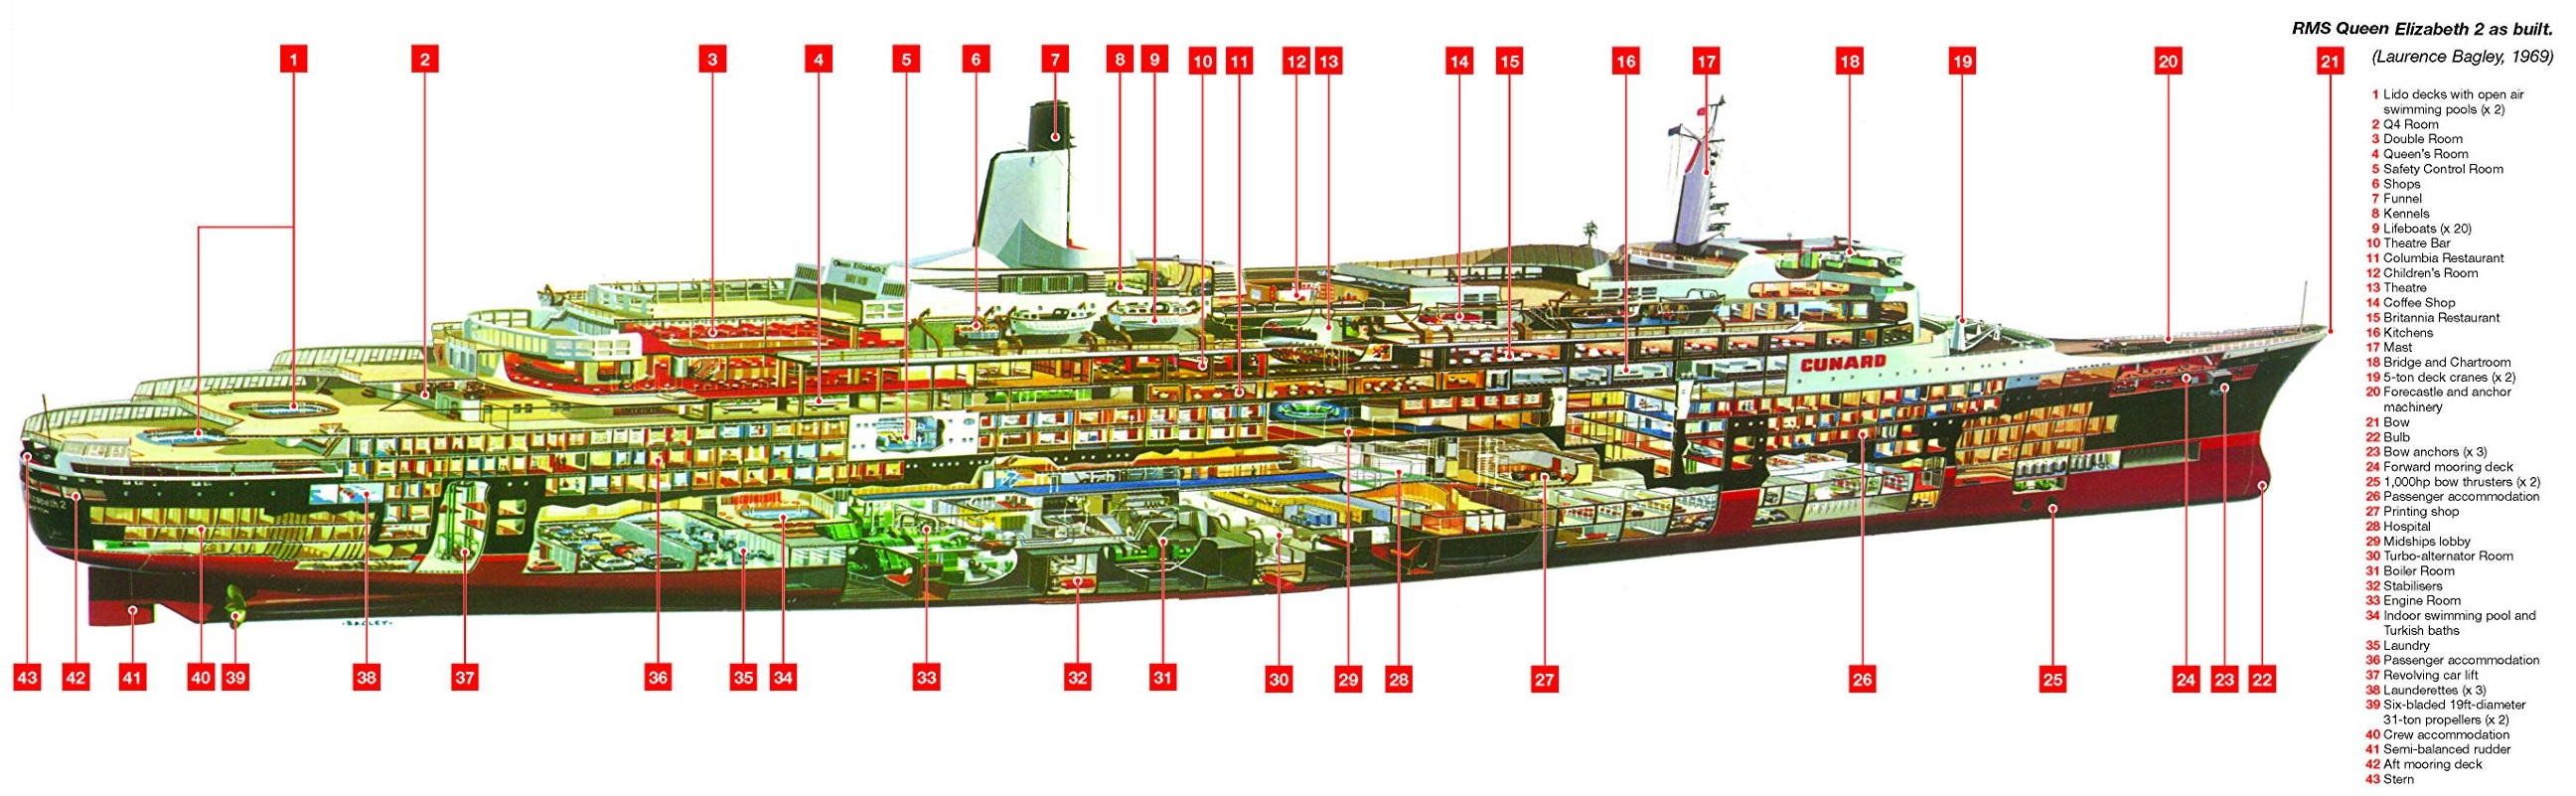 Cutaway of the QE2 as originally constructed.